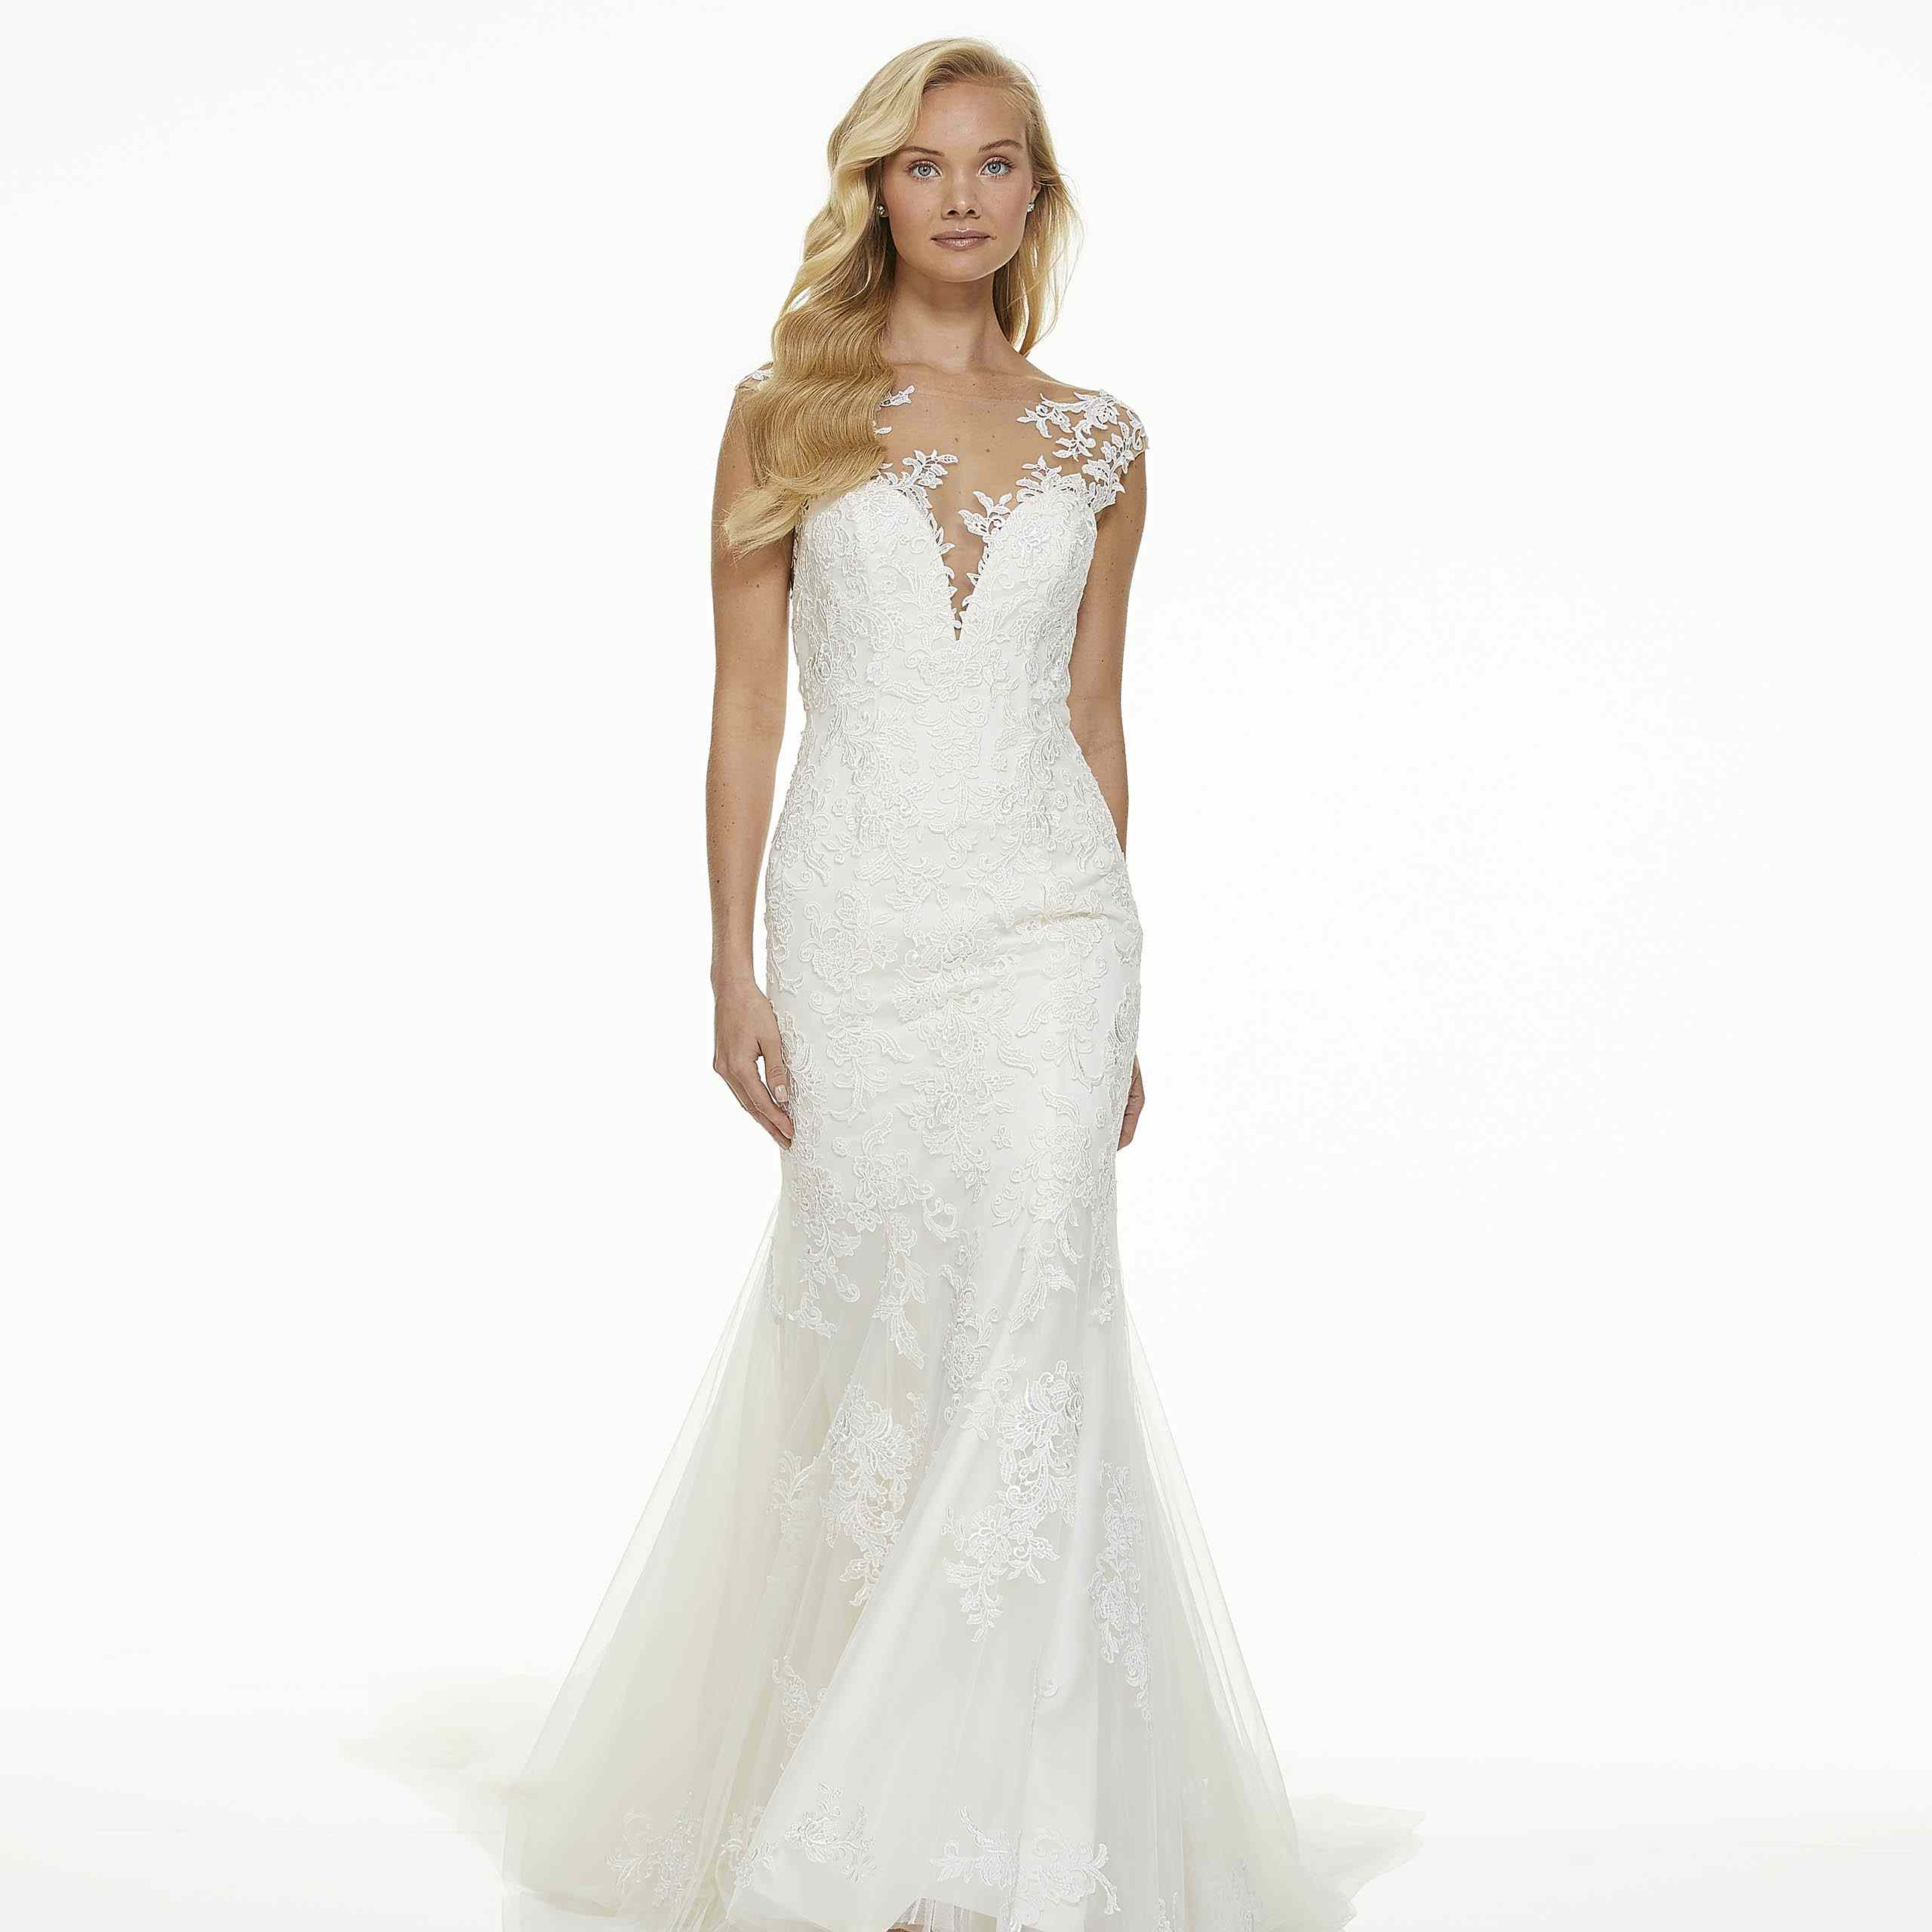 Model in fit-and-flare wedding dress